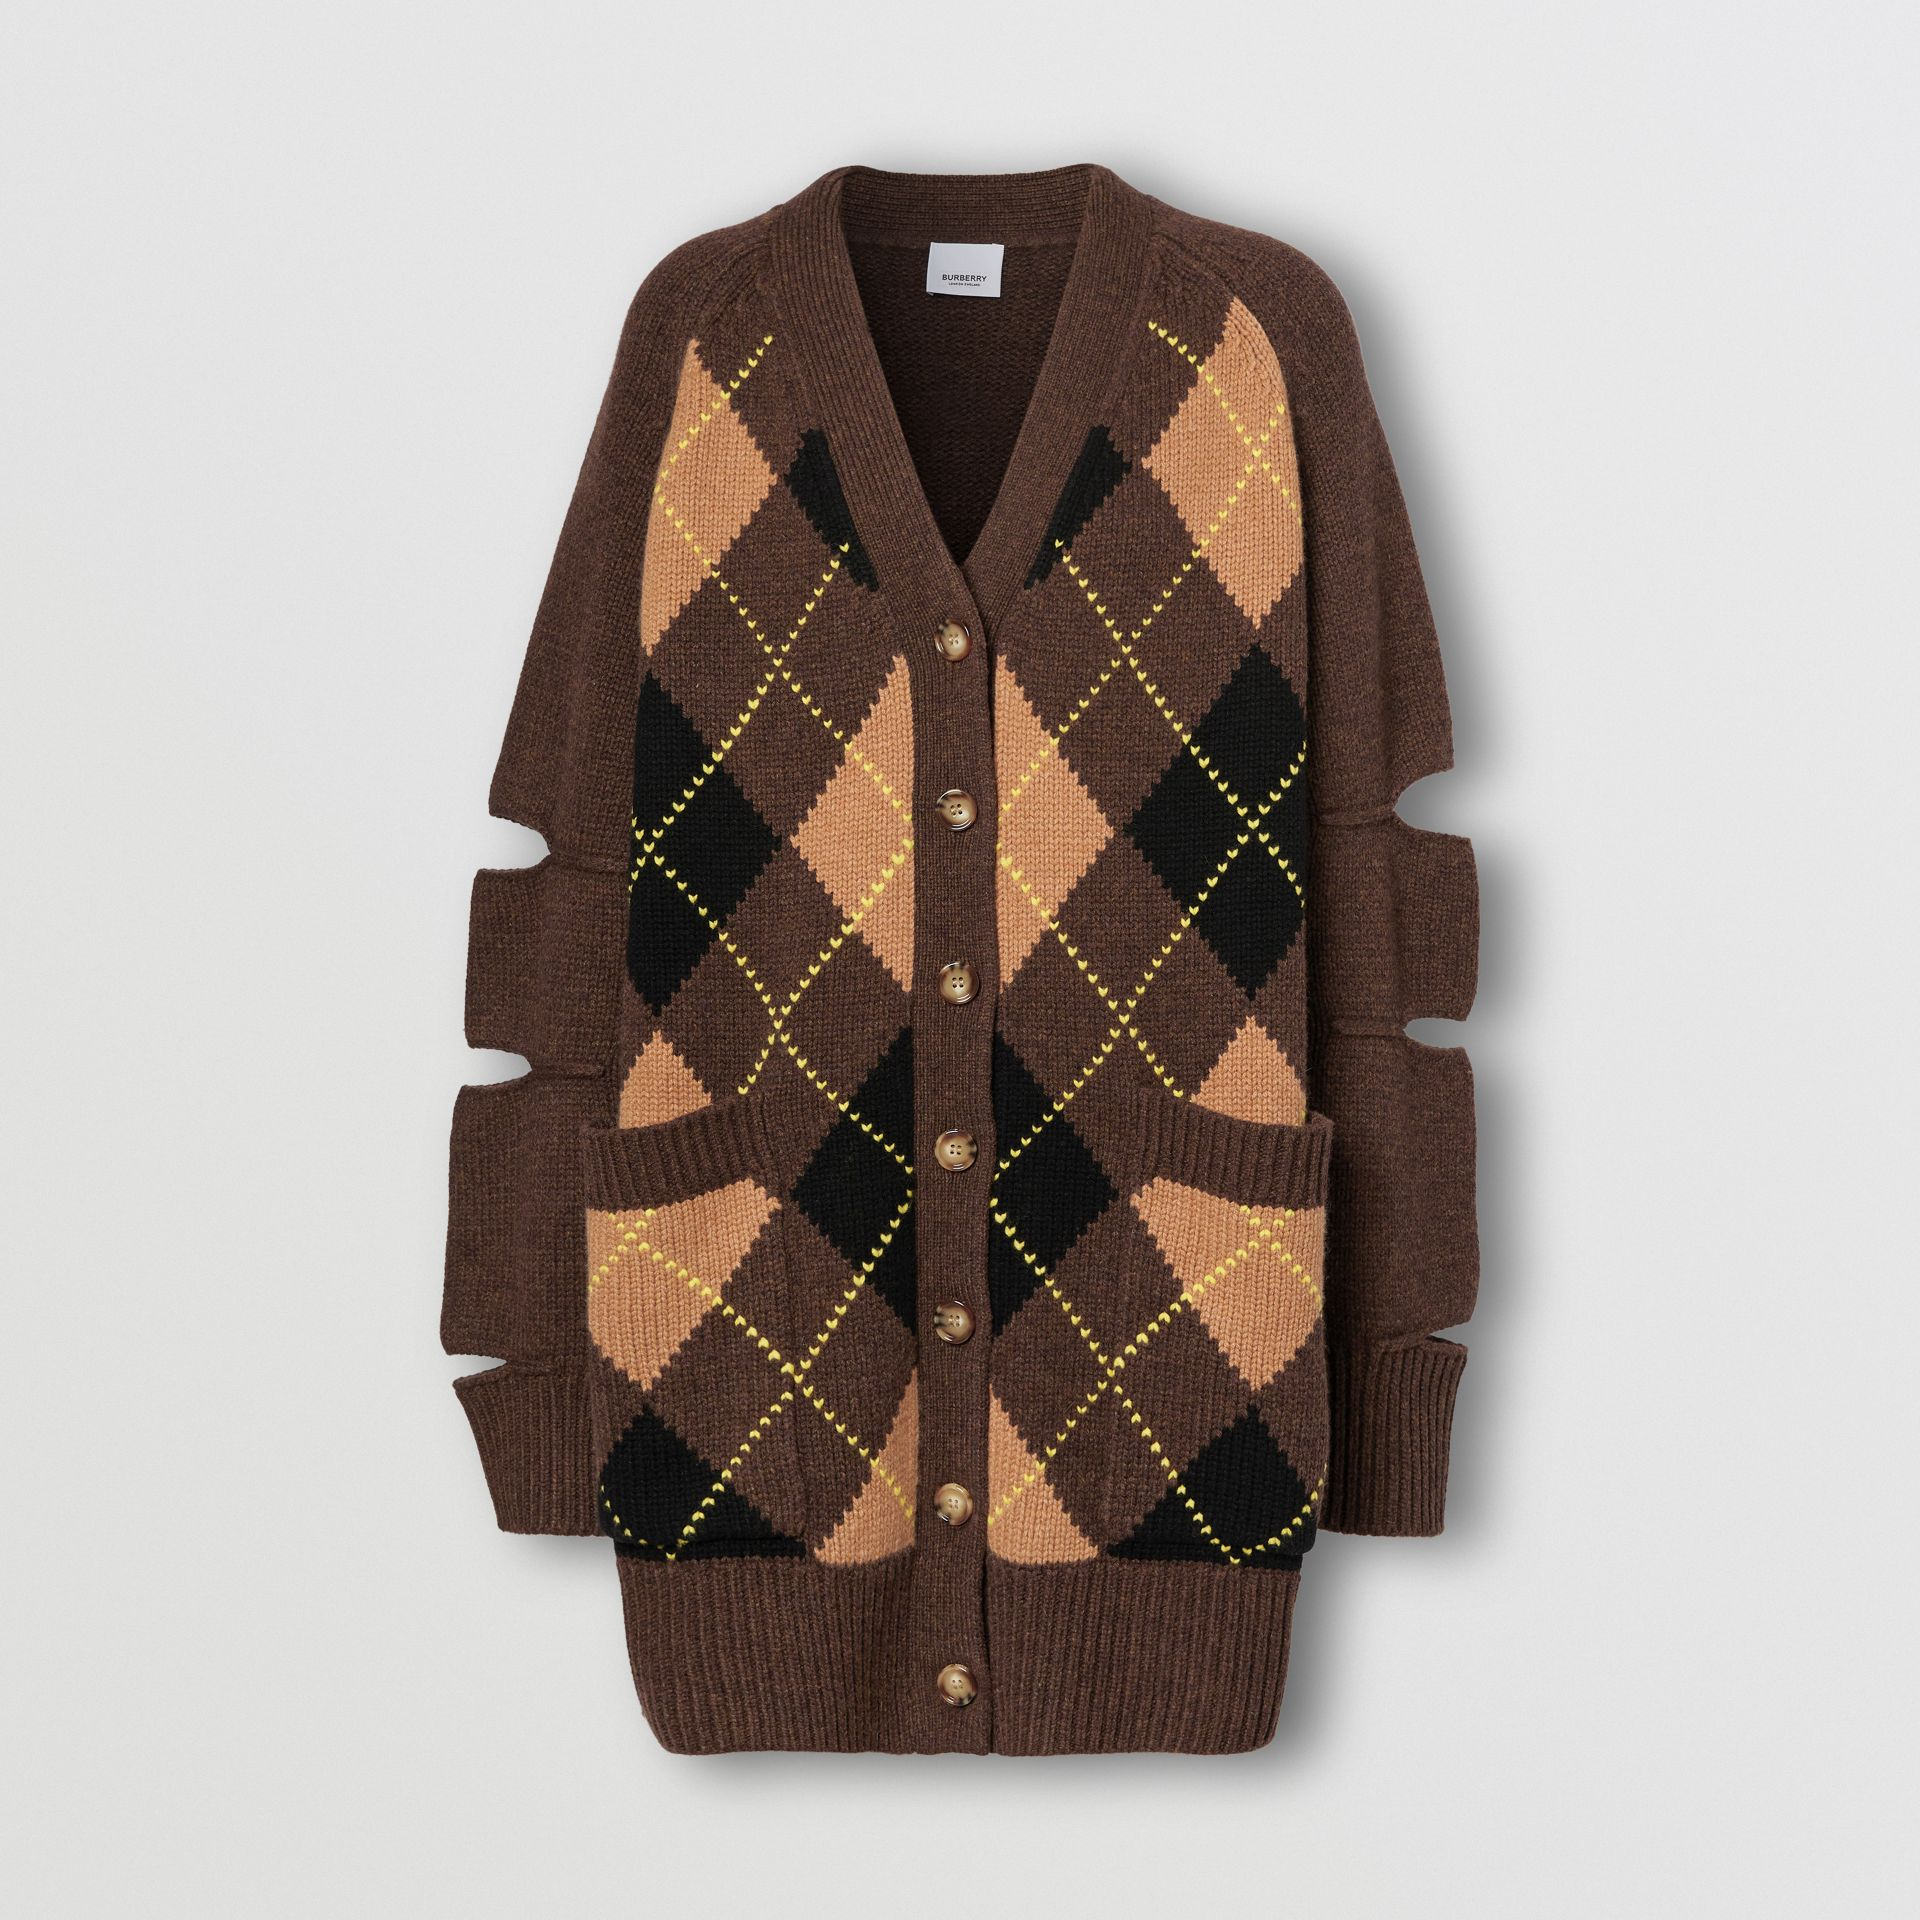 Cut-out Detail Argyle Intarsia Wool Cashmere Cardigan in Dark Khaki - Women | Burberry - gallery image 3